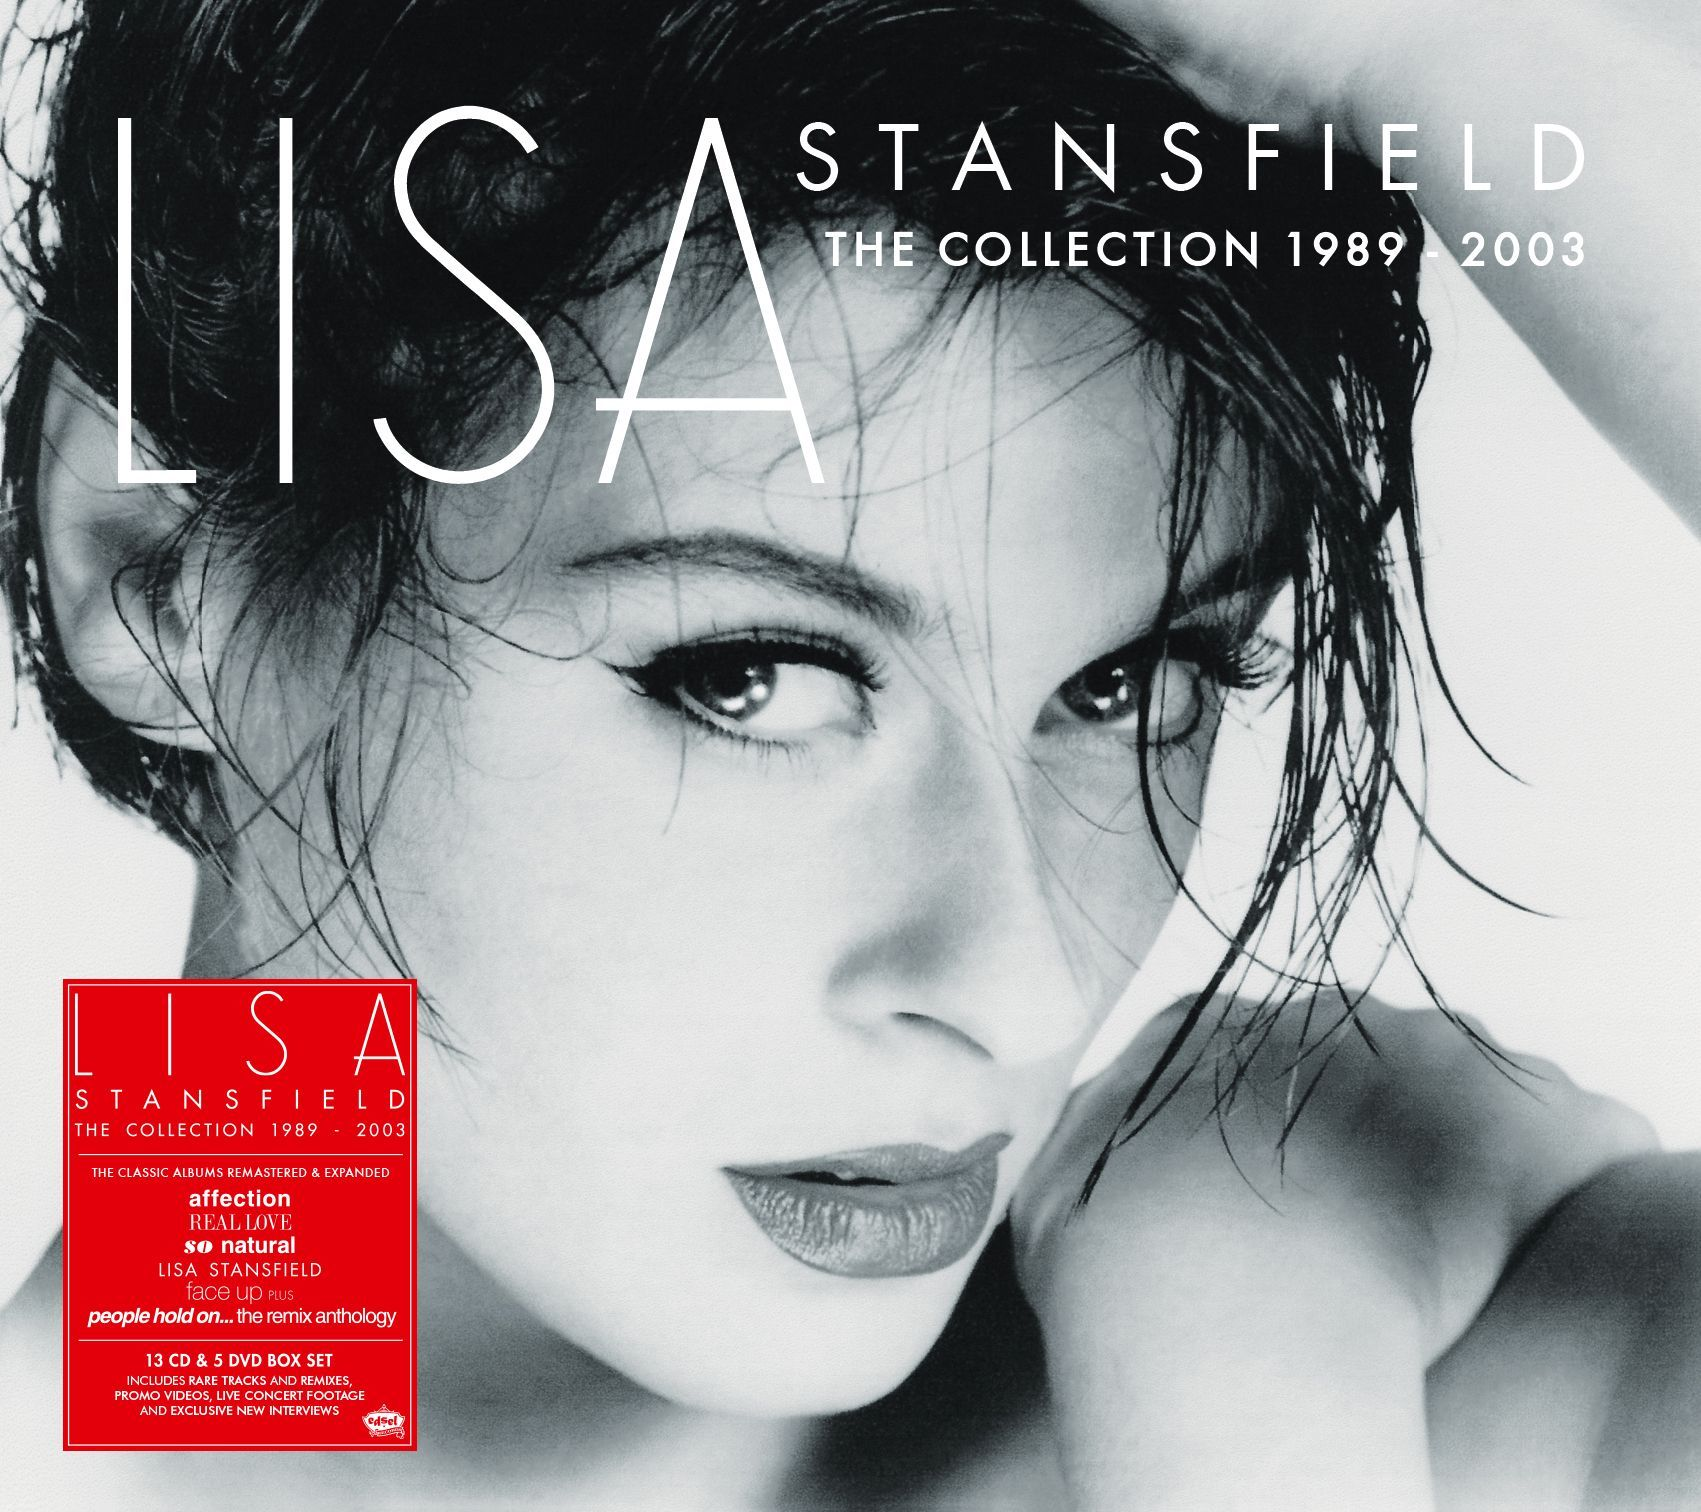 Lisa Stansfield Collection 1989 03